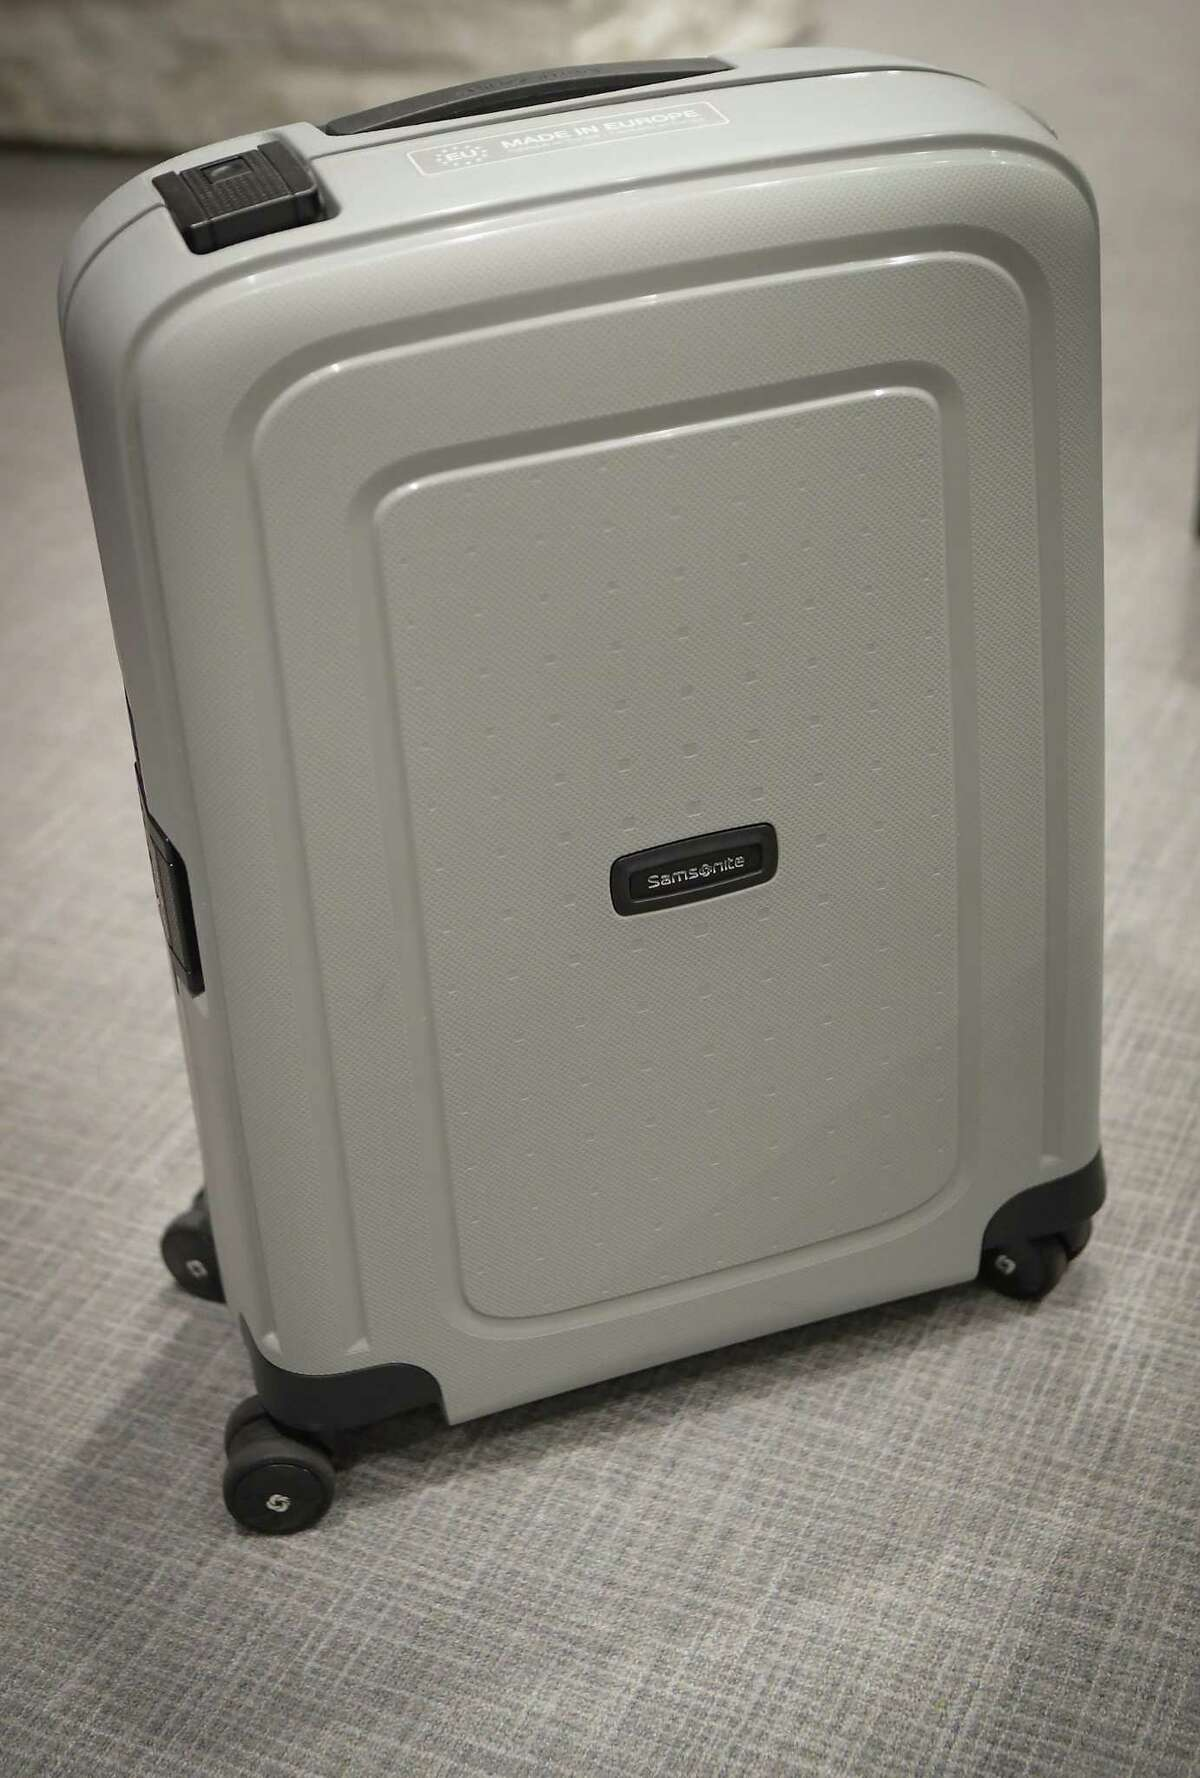 A Samsonite luggage made from recycled plastics is shown by Bob Patel, CEO of LyondellBasell chemical industry company Thursday, June 3, 2021, in Houston.